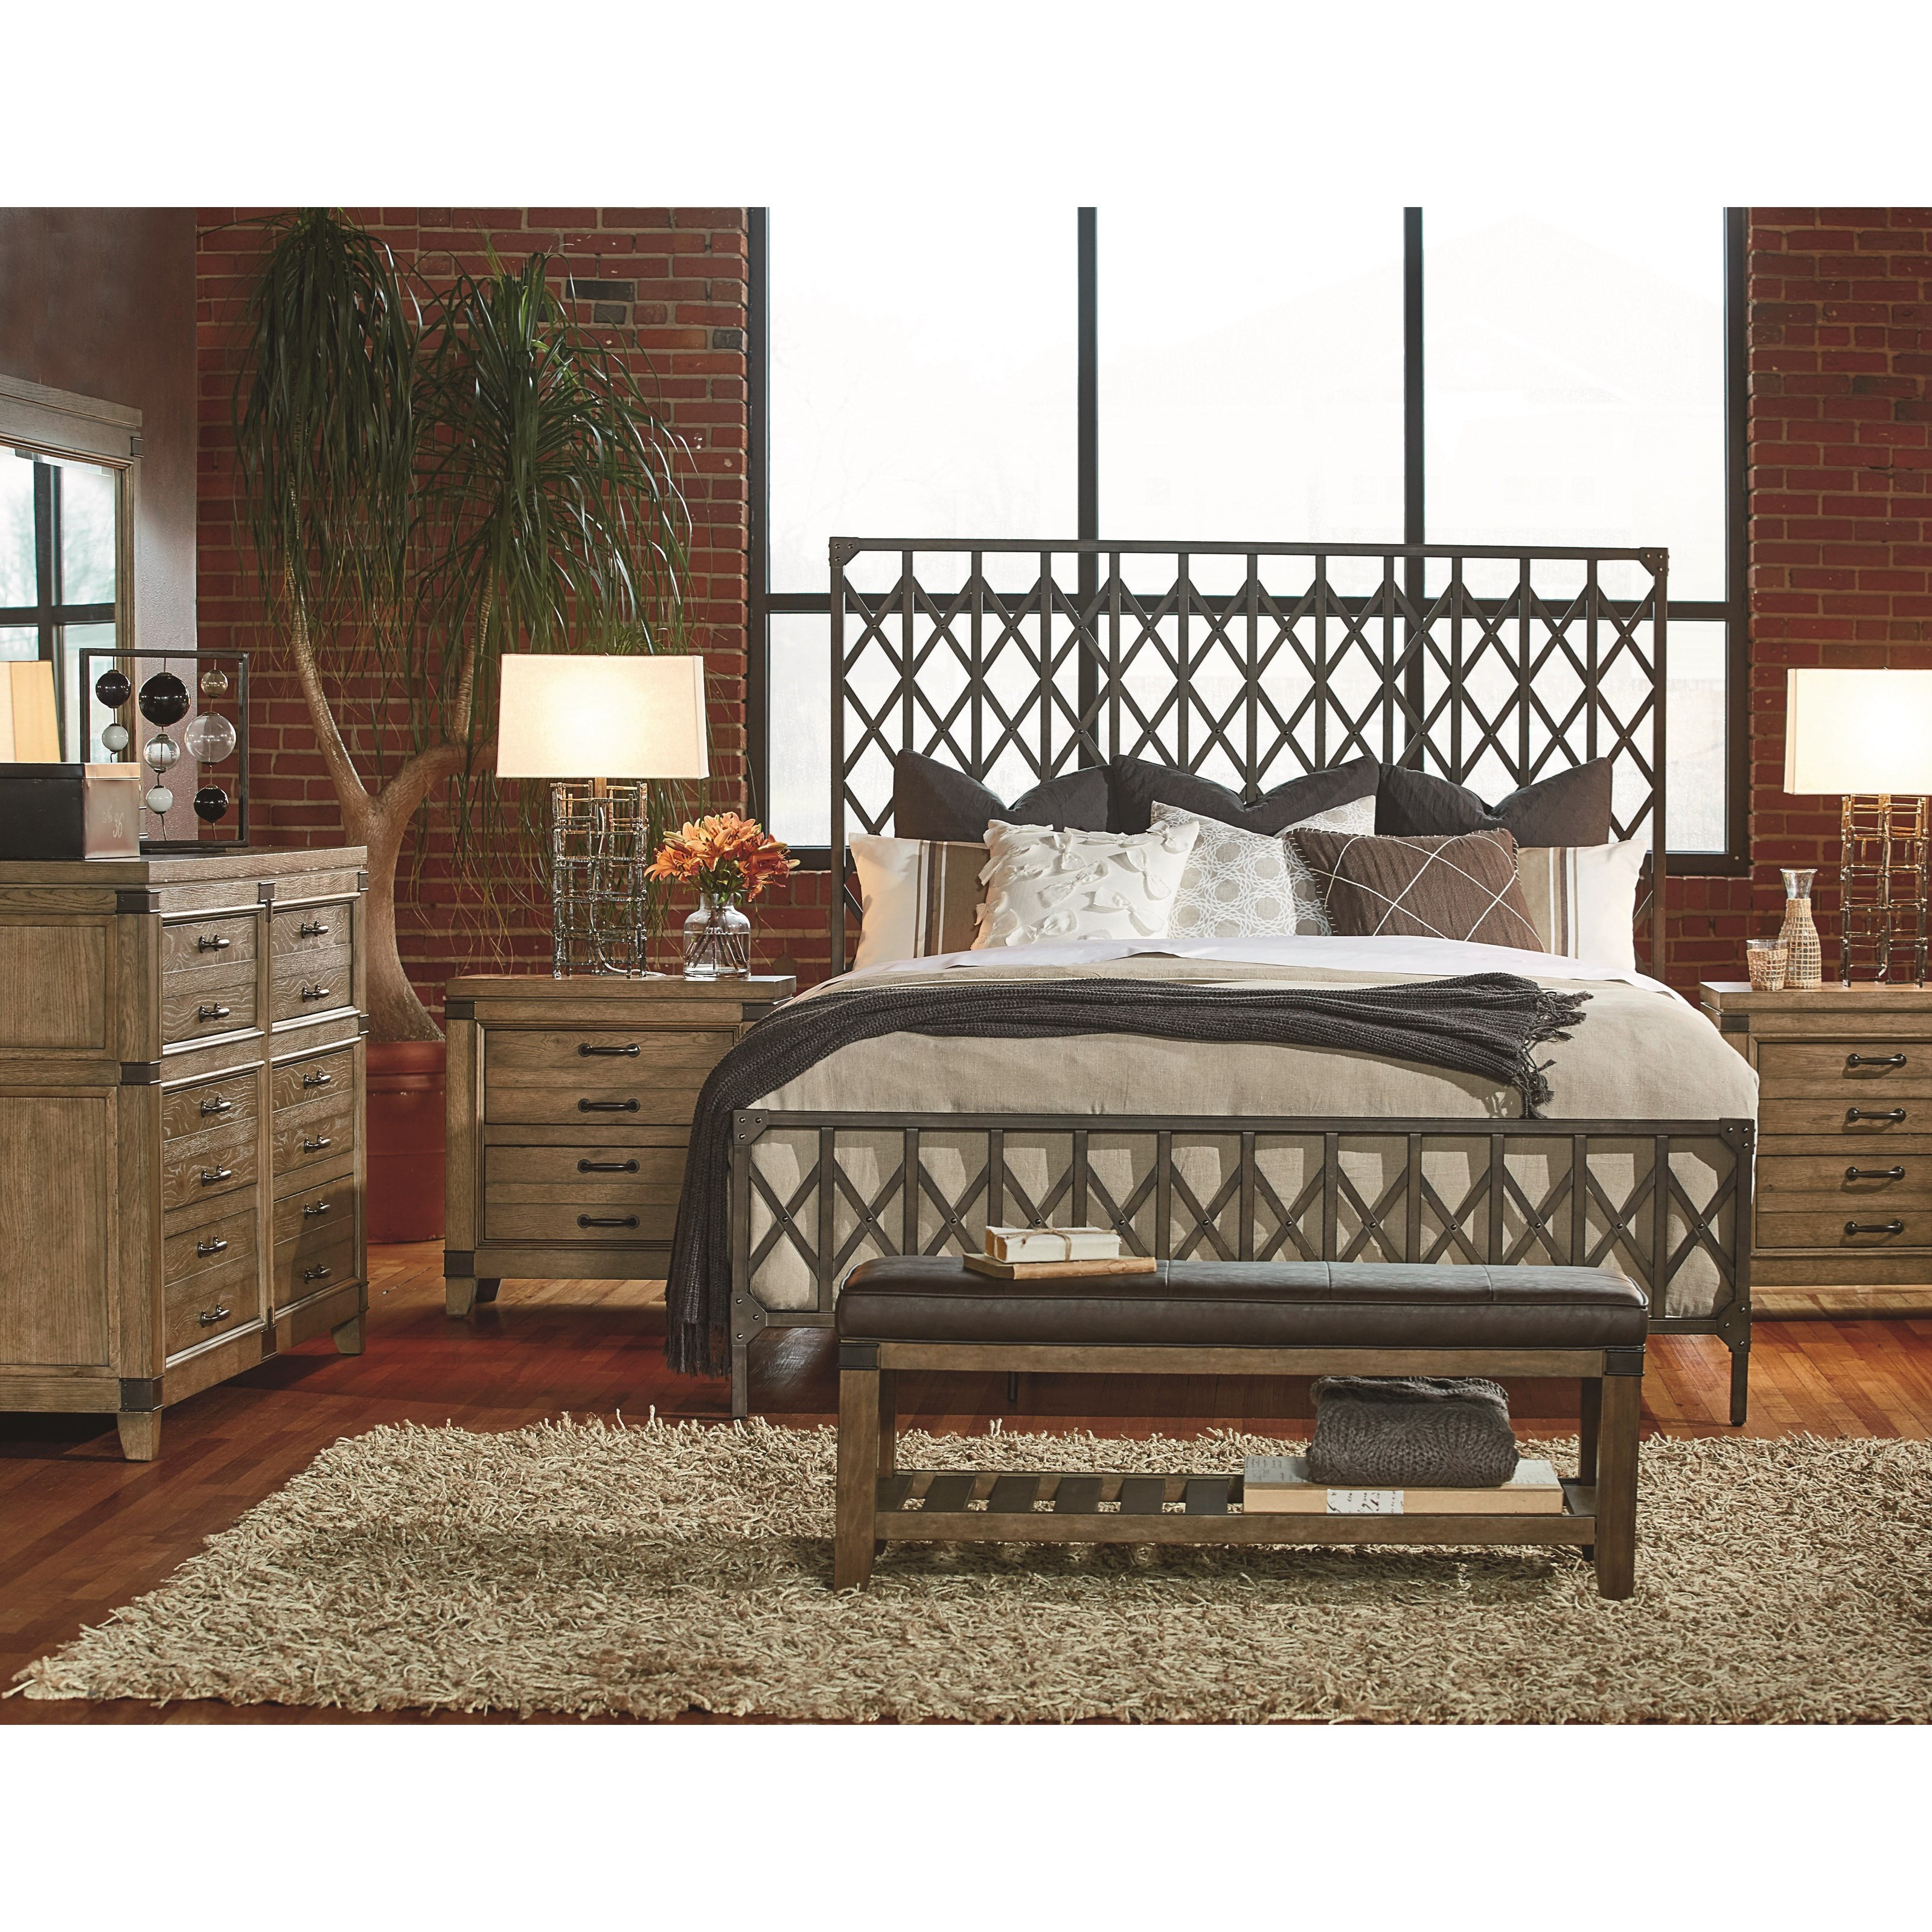 Legacy Classic Metalworks King Bedroom Group - Item Number: 5610 K Bedroom Group 3